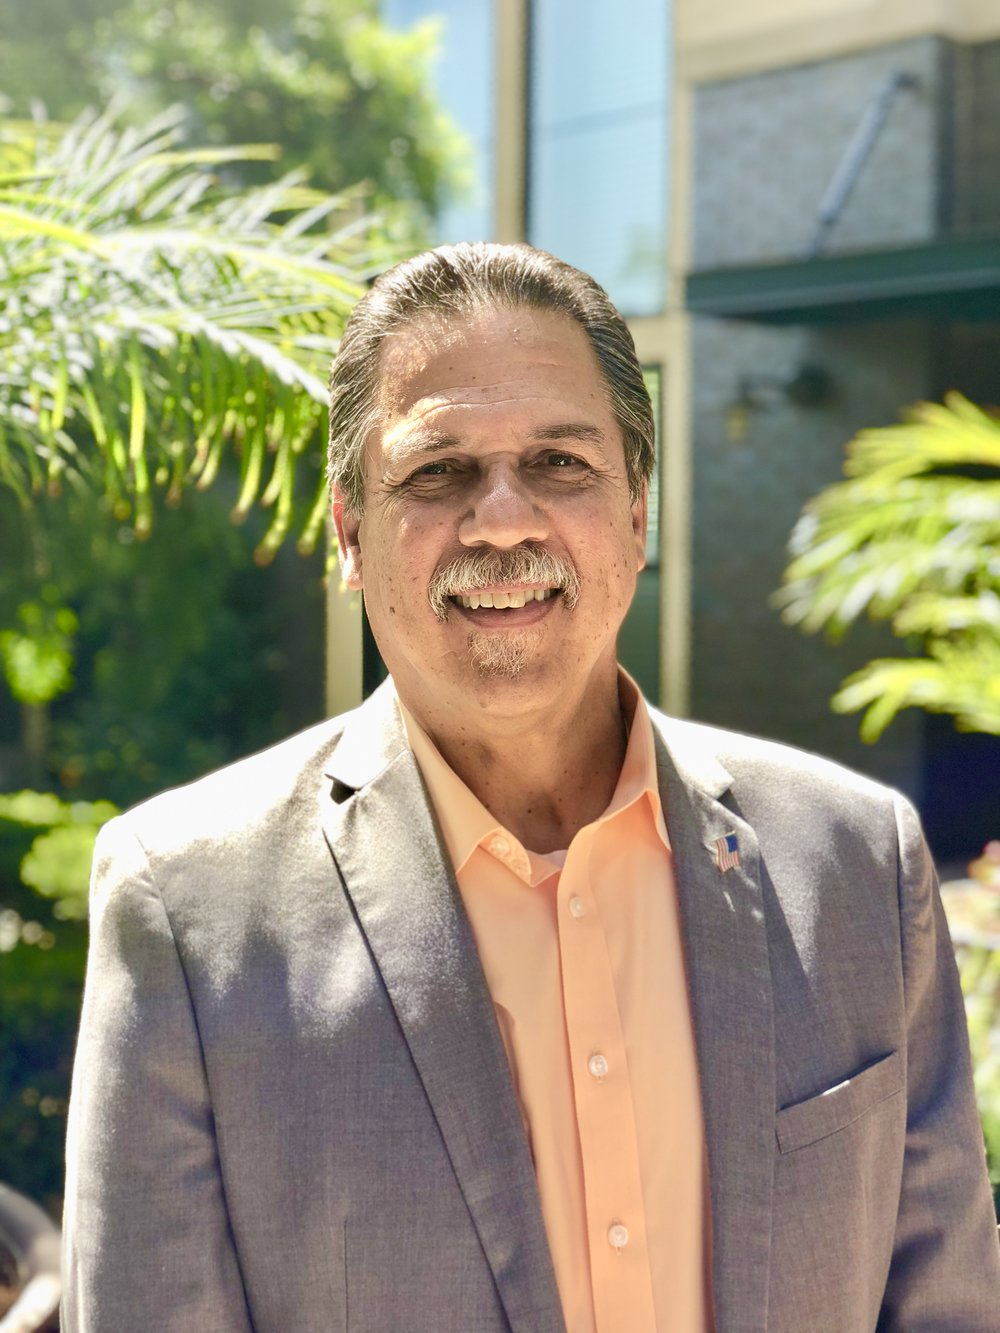 Nestor Correa, former vice president and program manager at Pacific Coast Regional Small Business Development Corporation in Los Angeles has moved southward to fill the role at the Orange County development corporation in Santa Ana.